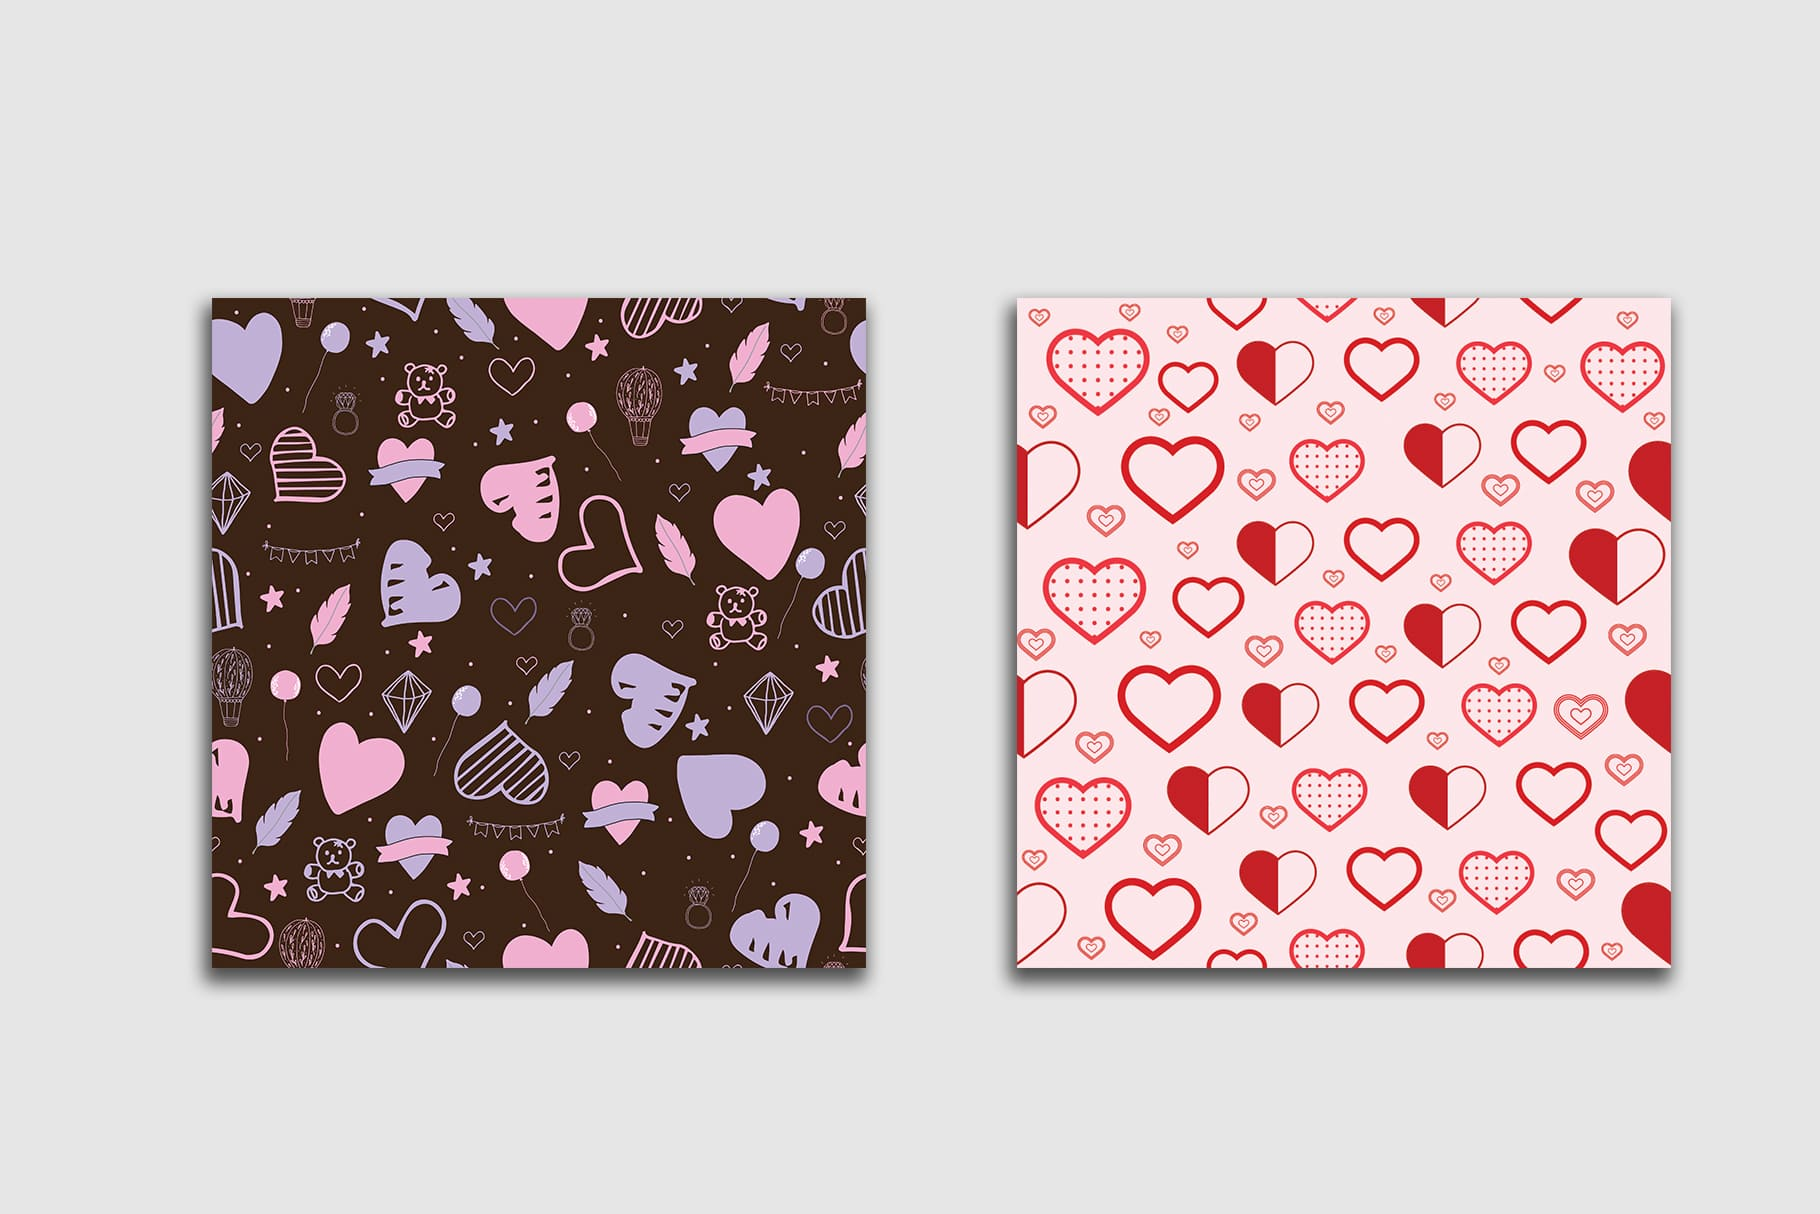 Two tiles. One is pink with hearts, the other is brown with soft pink hearts.